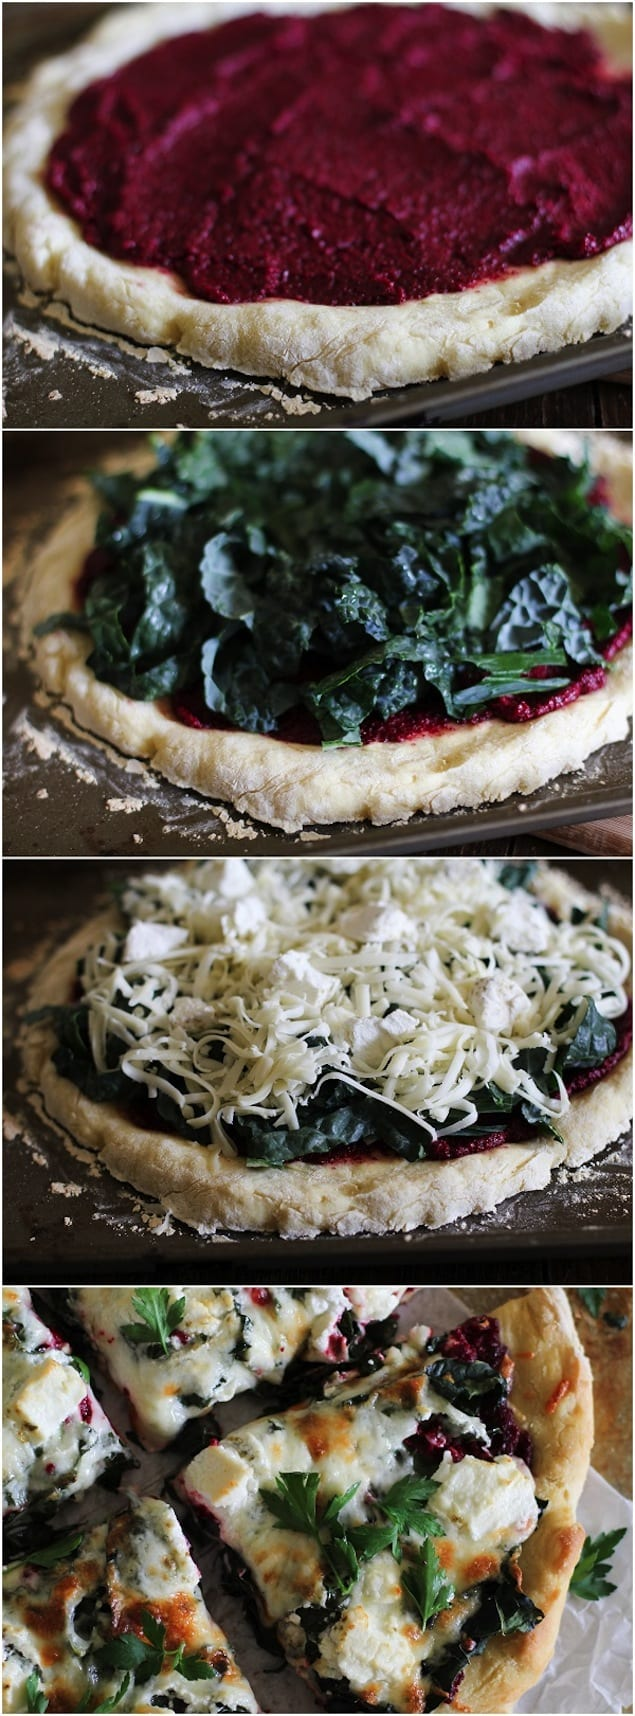 Beet_Pesto_Pizza_with_kale_and_goat_cheese